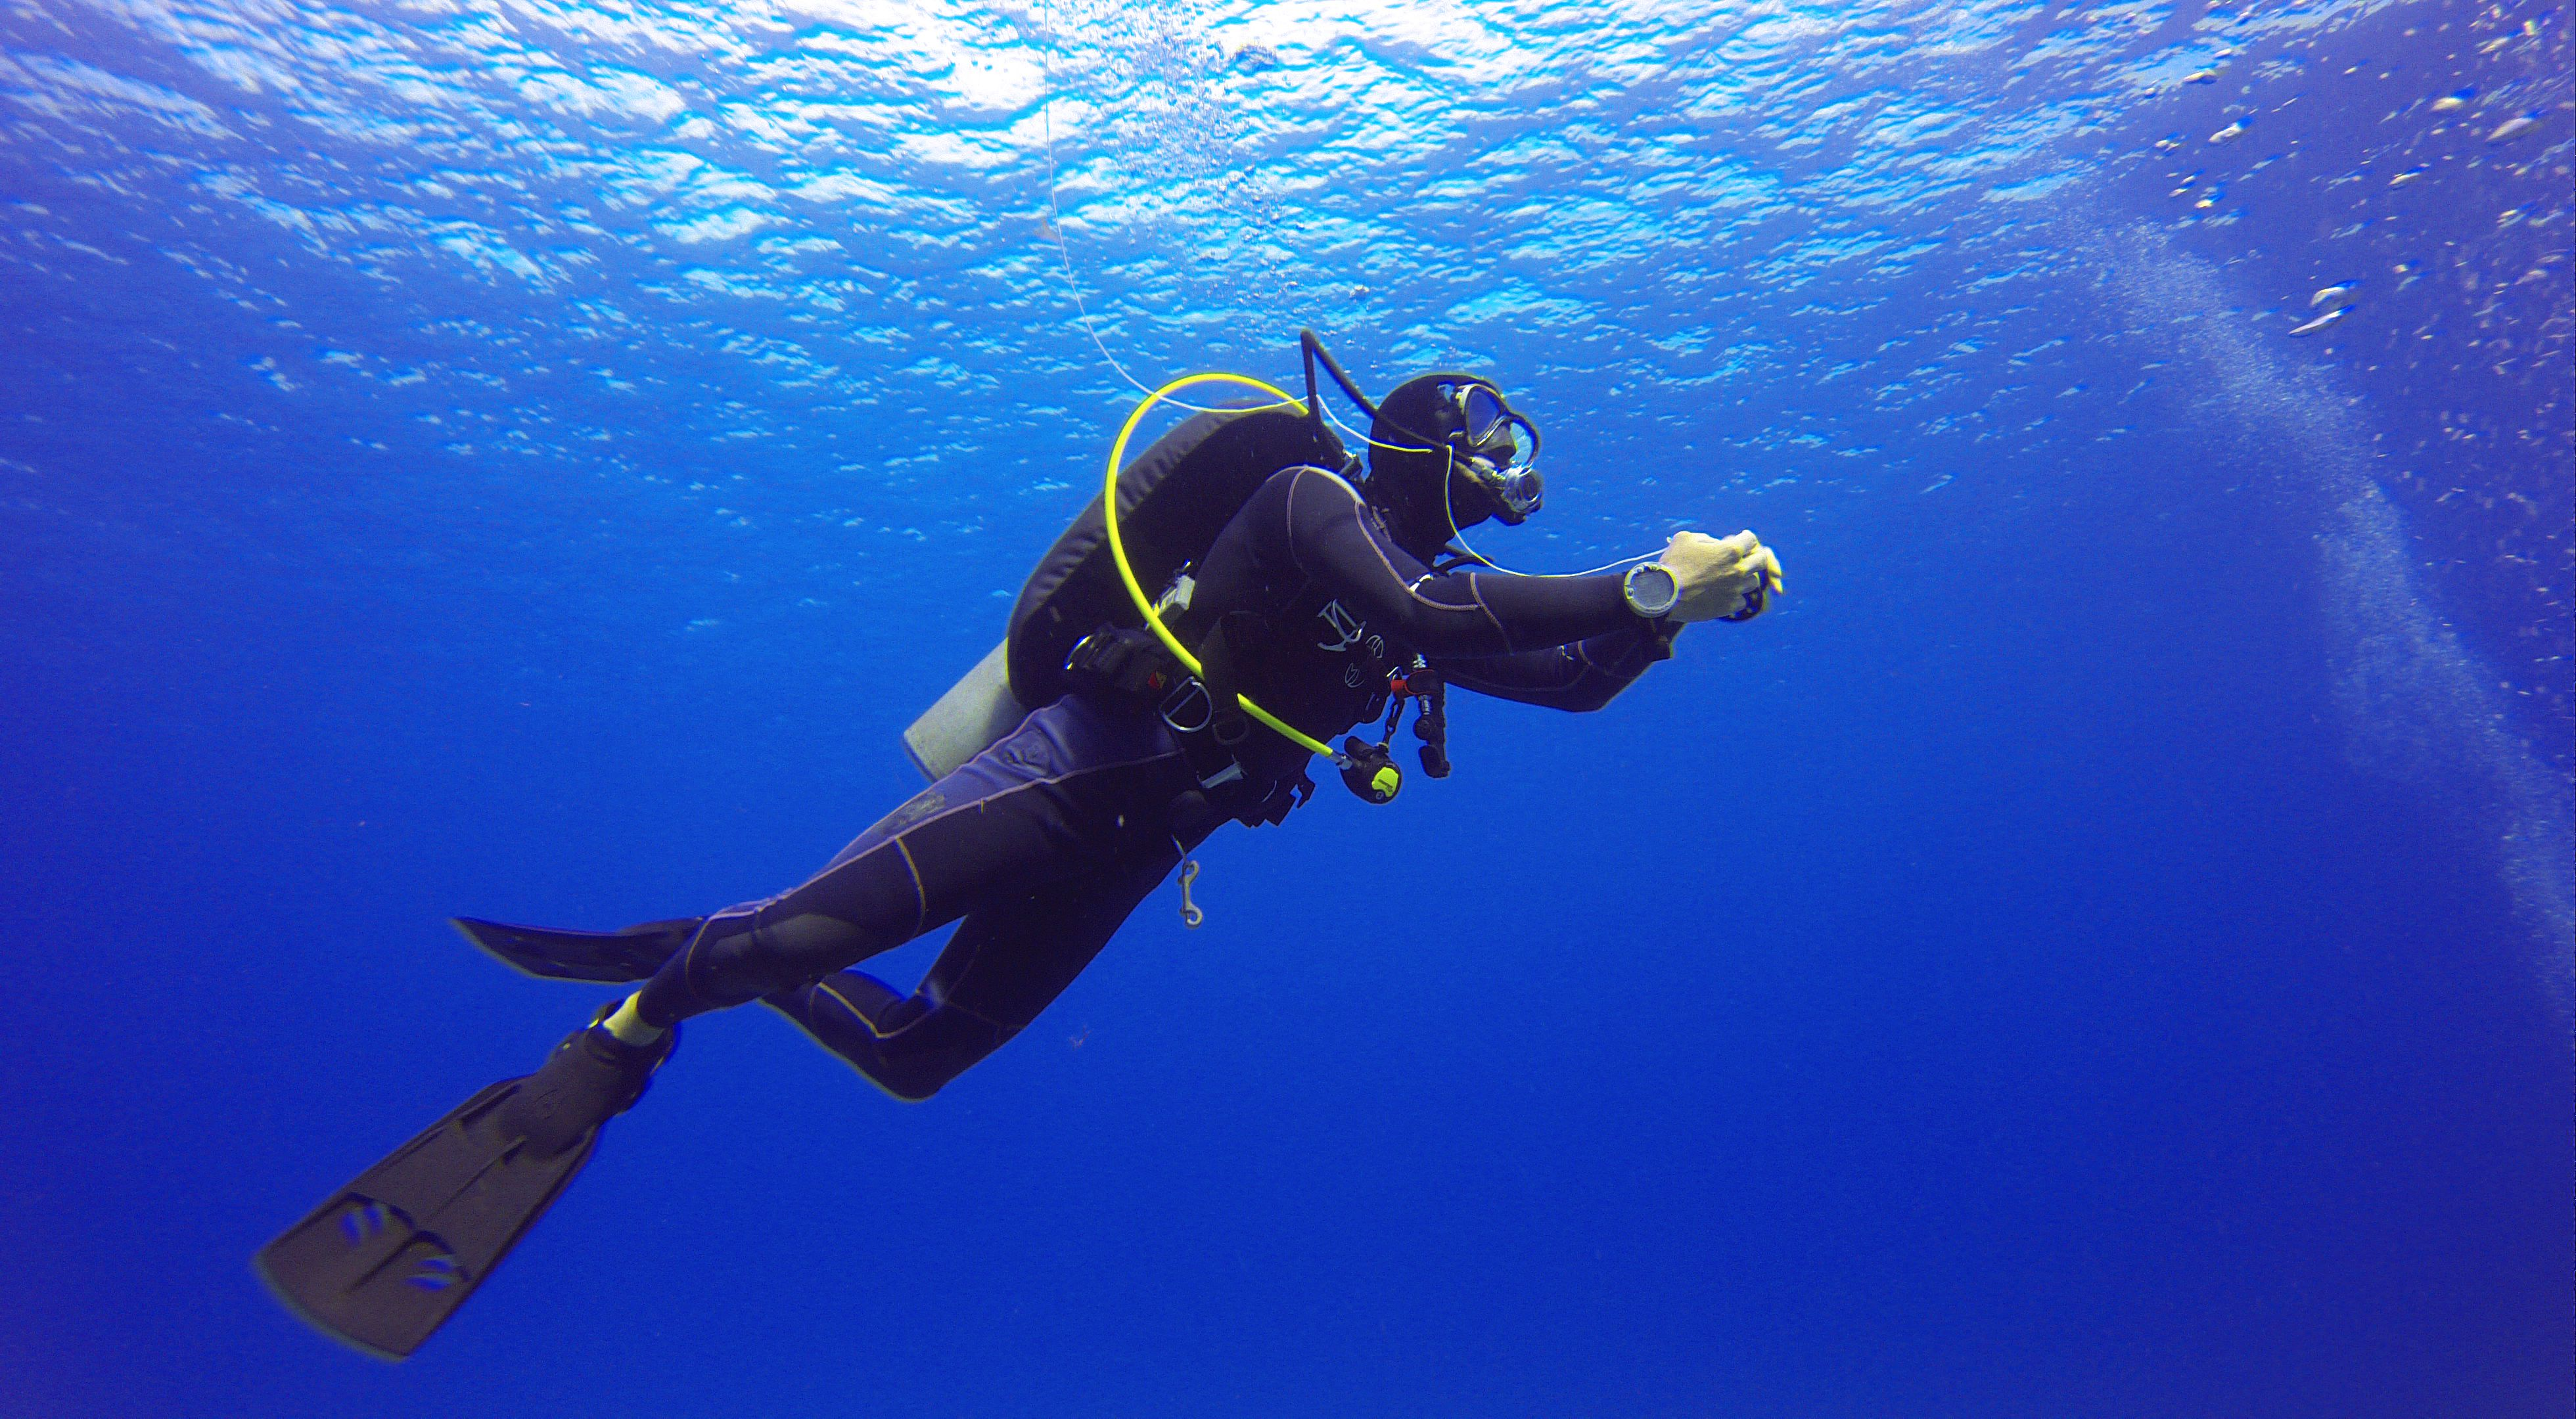 Scuba Diving Risks - Pressure, Depth and Consequences